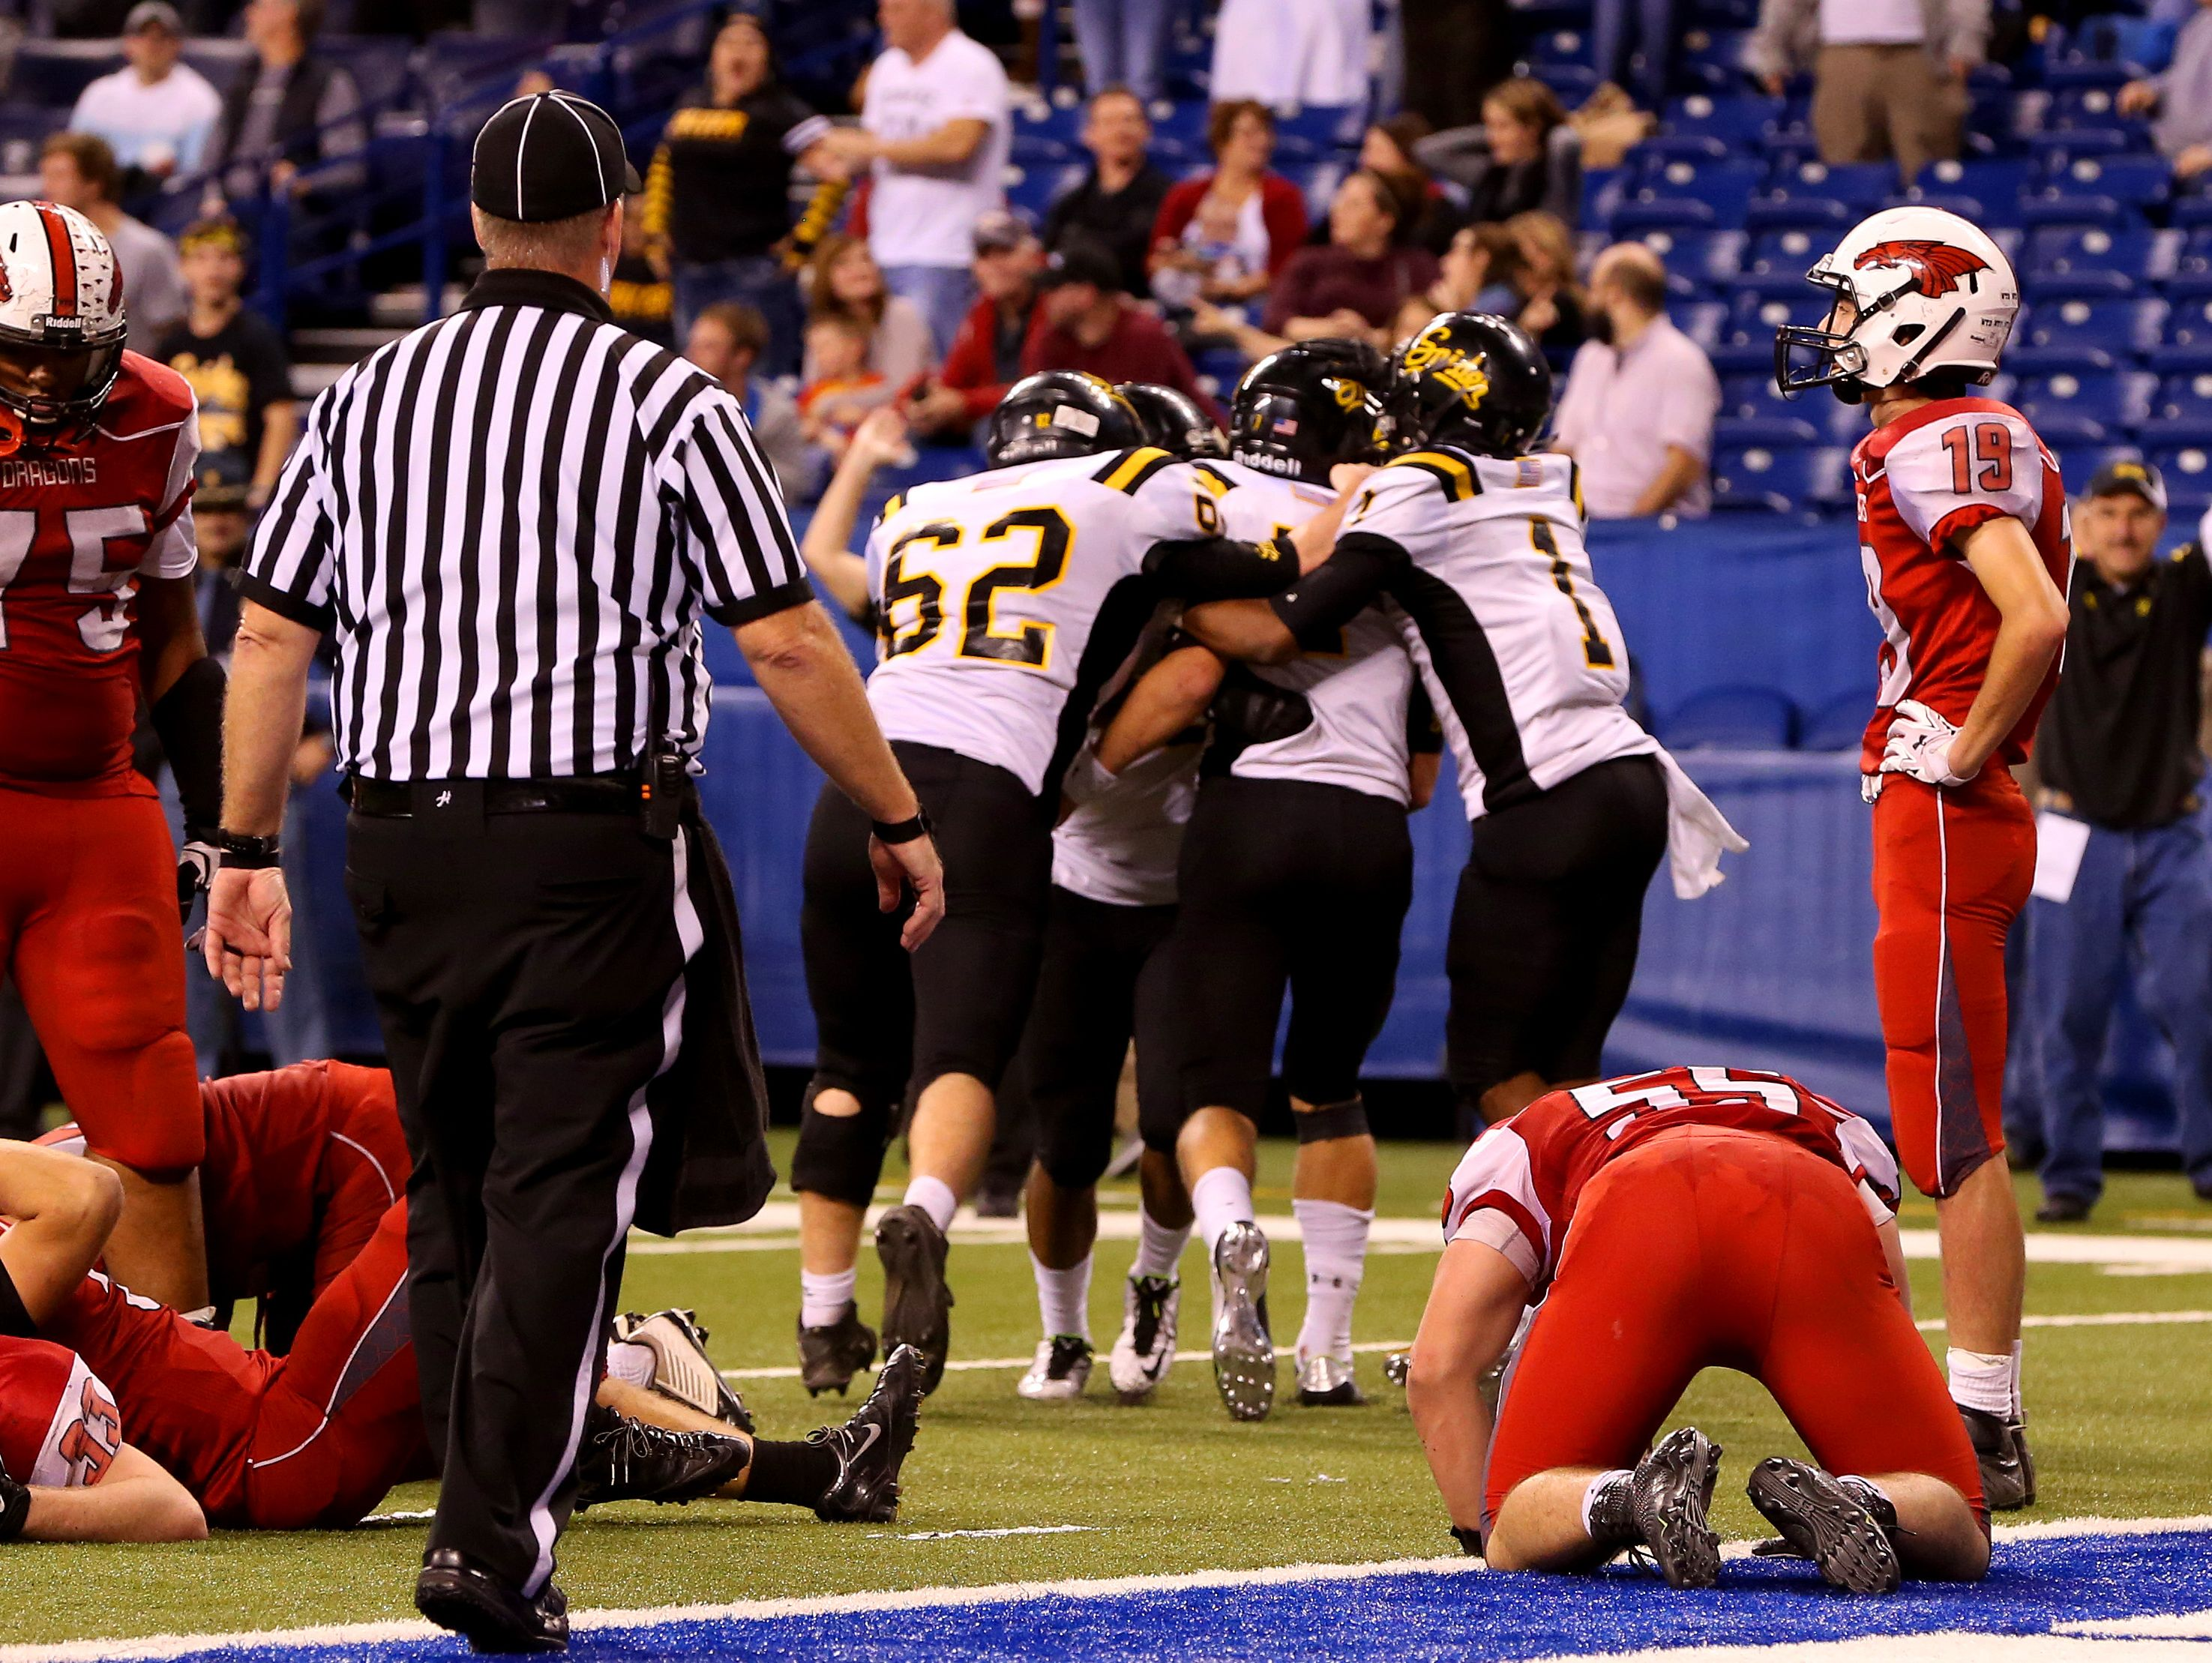 New Palestine Dragons show their disappointment after allowing a last minute Fort Wayne Snider touchdown in the Class 5A IHSAA Football State Tournament finals at Lucas Oil Stadium on Nov. 27, 2015.